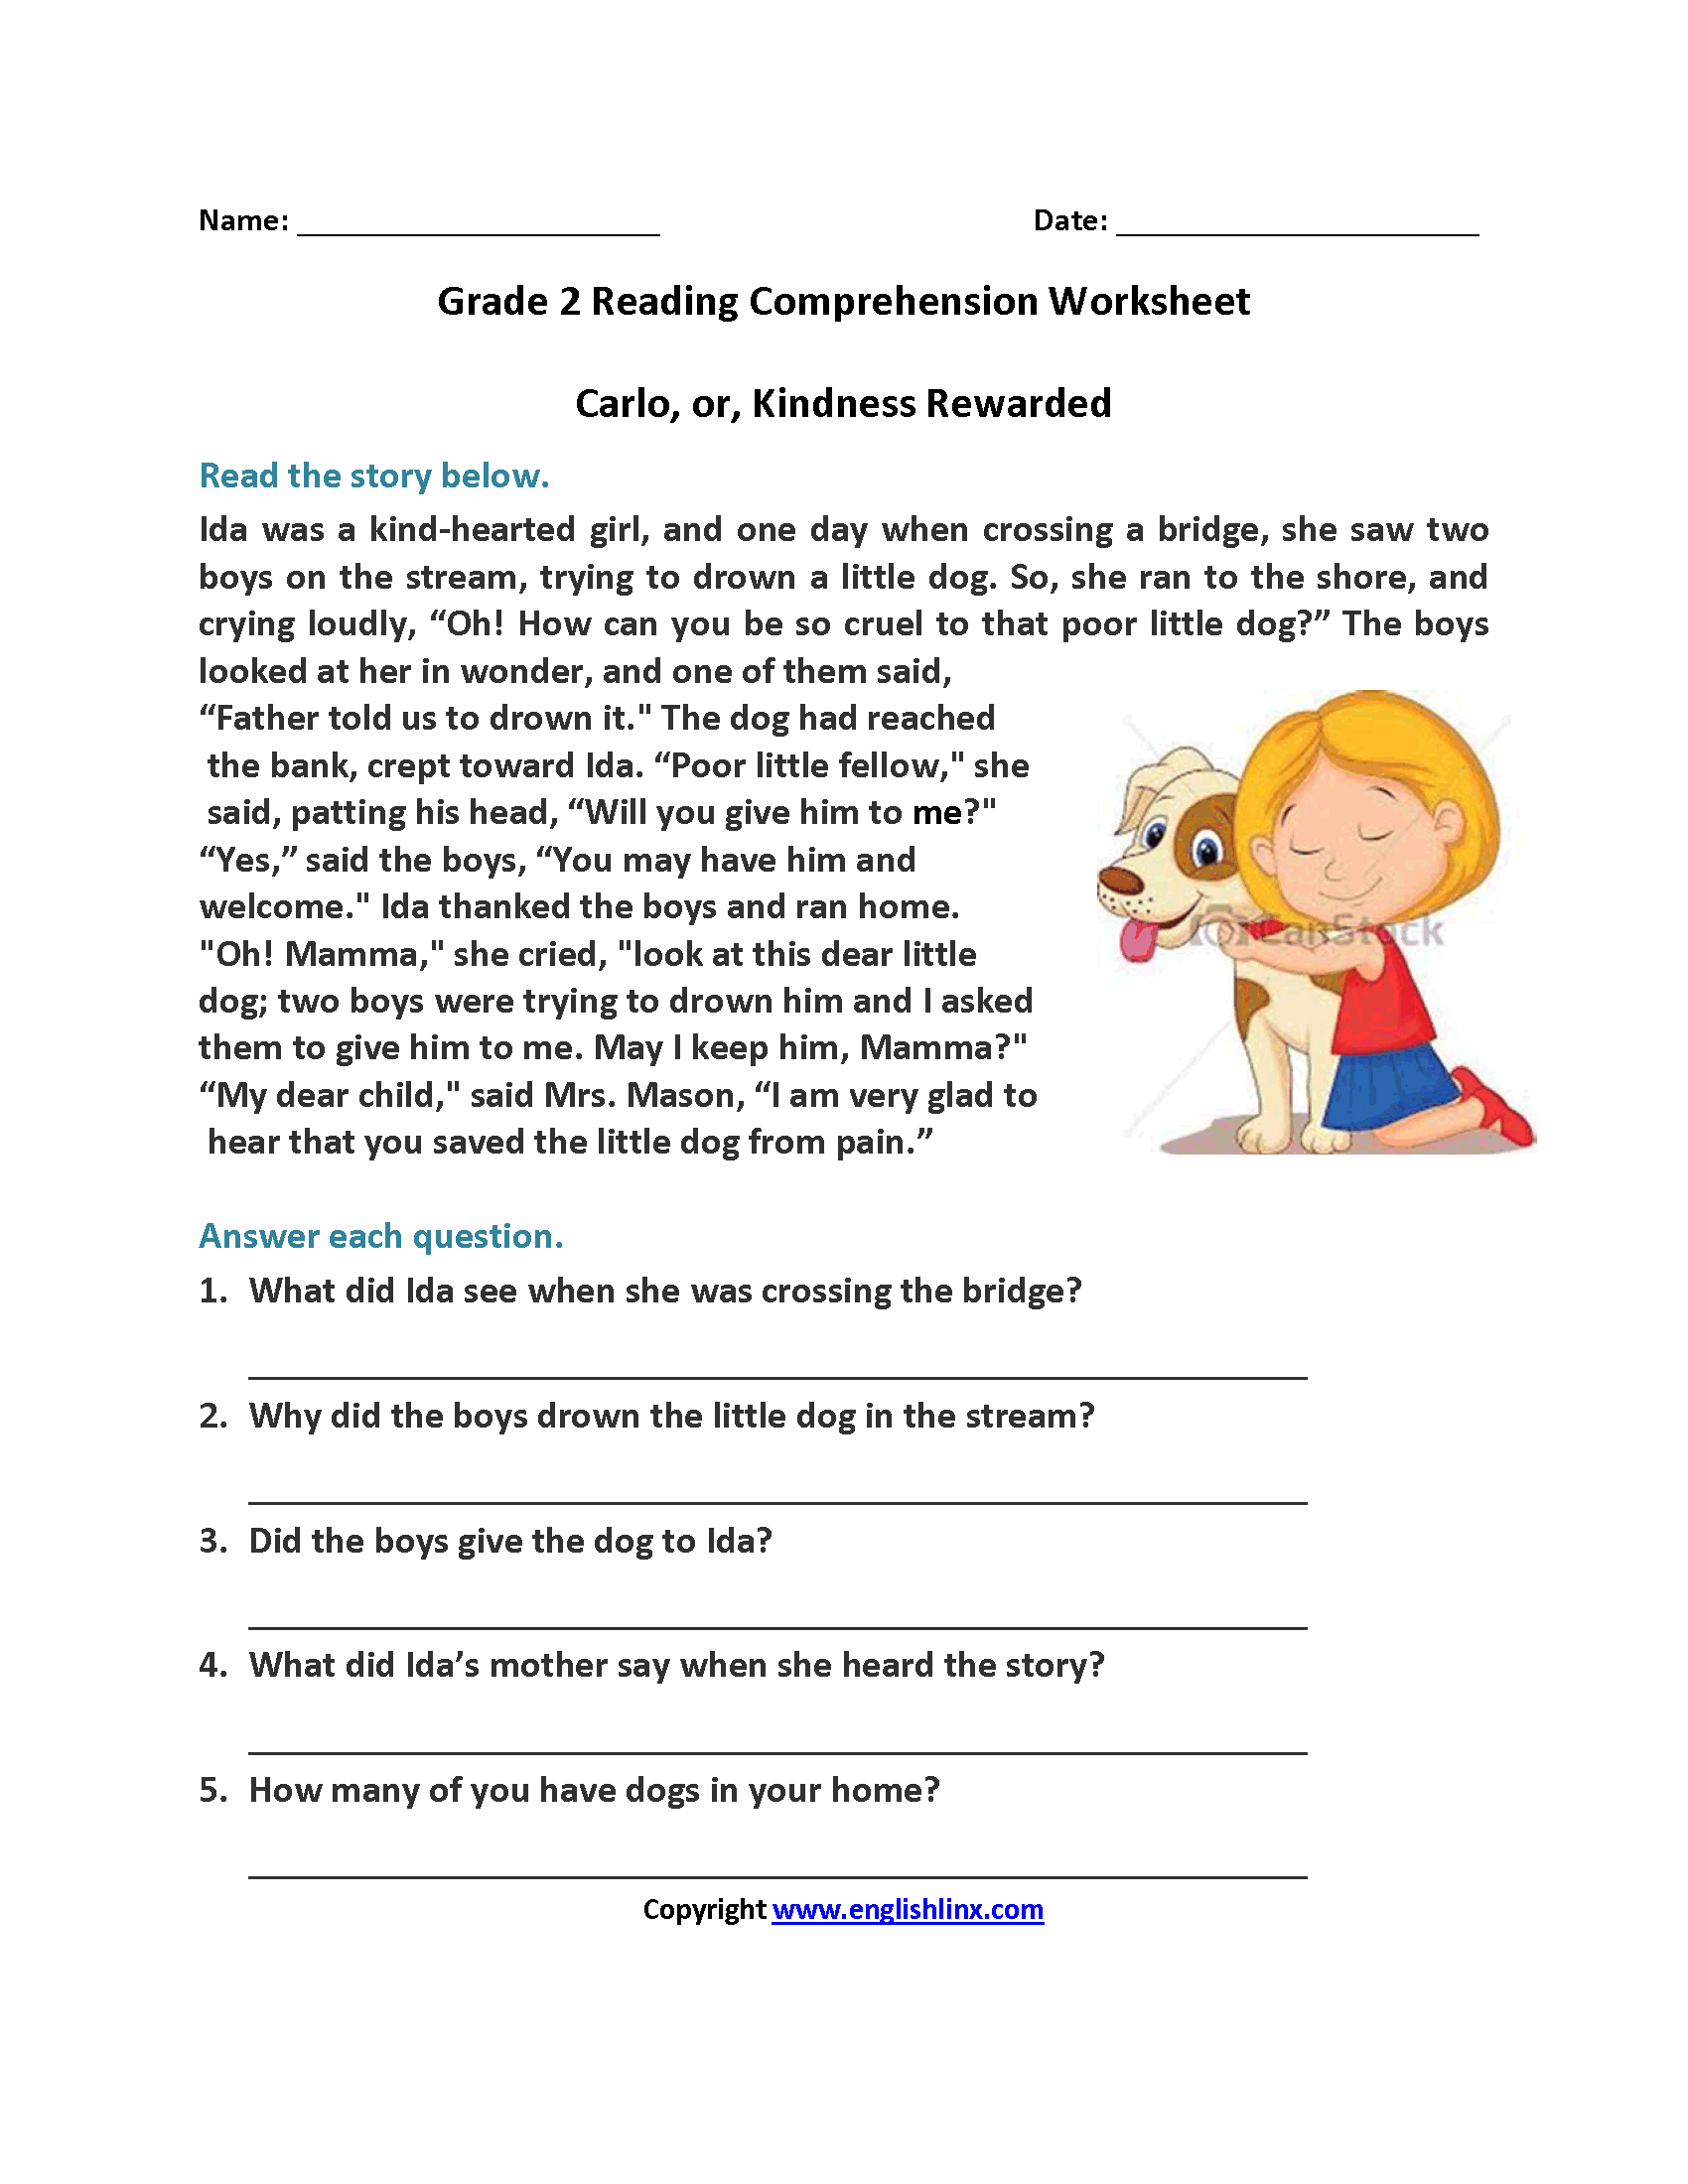 Carlo Or Kindness Rewarded Second Grade Reading Worksheets | Reading - Free Printable Short Stories For Grade 3